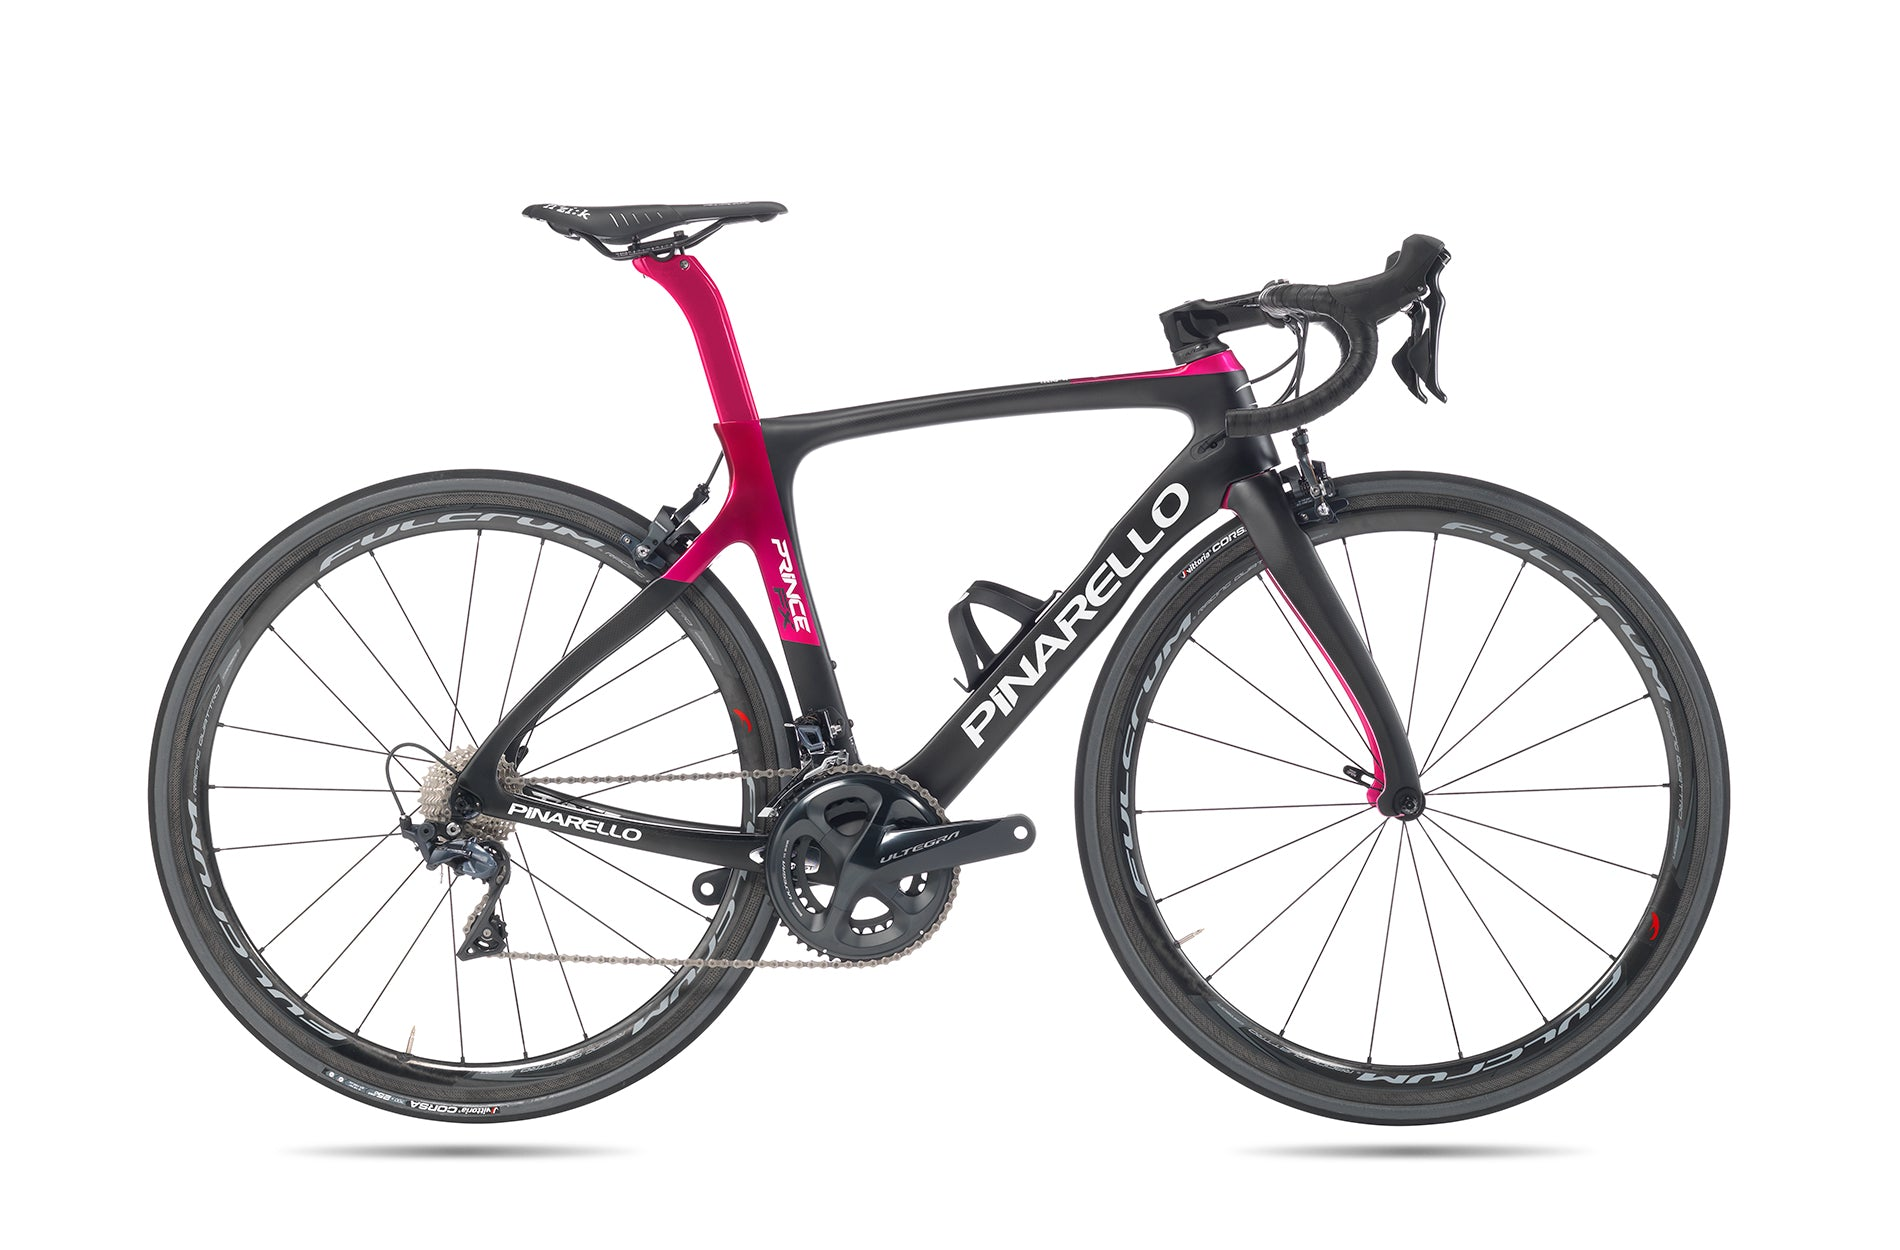 Pinarello 2019 Pinarello Prince FX Dura Ace Mechanical - 44cm / 736 Gradient Kunzite